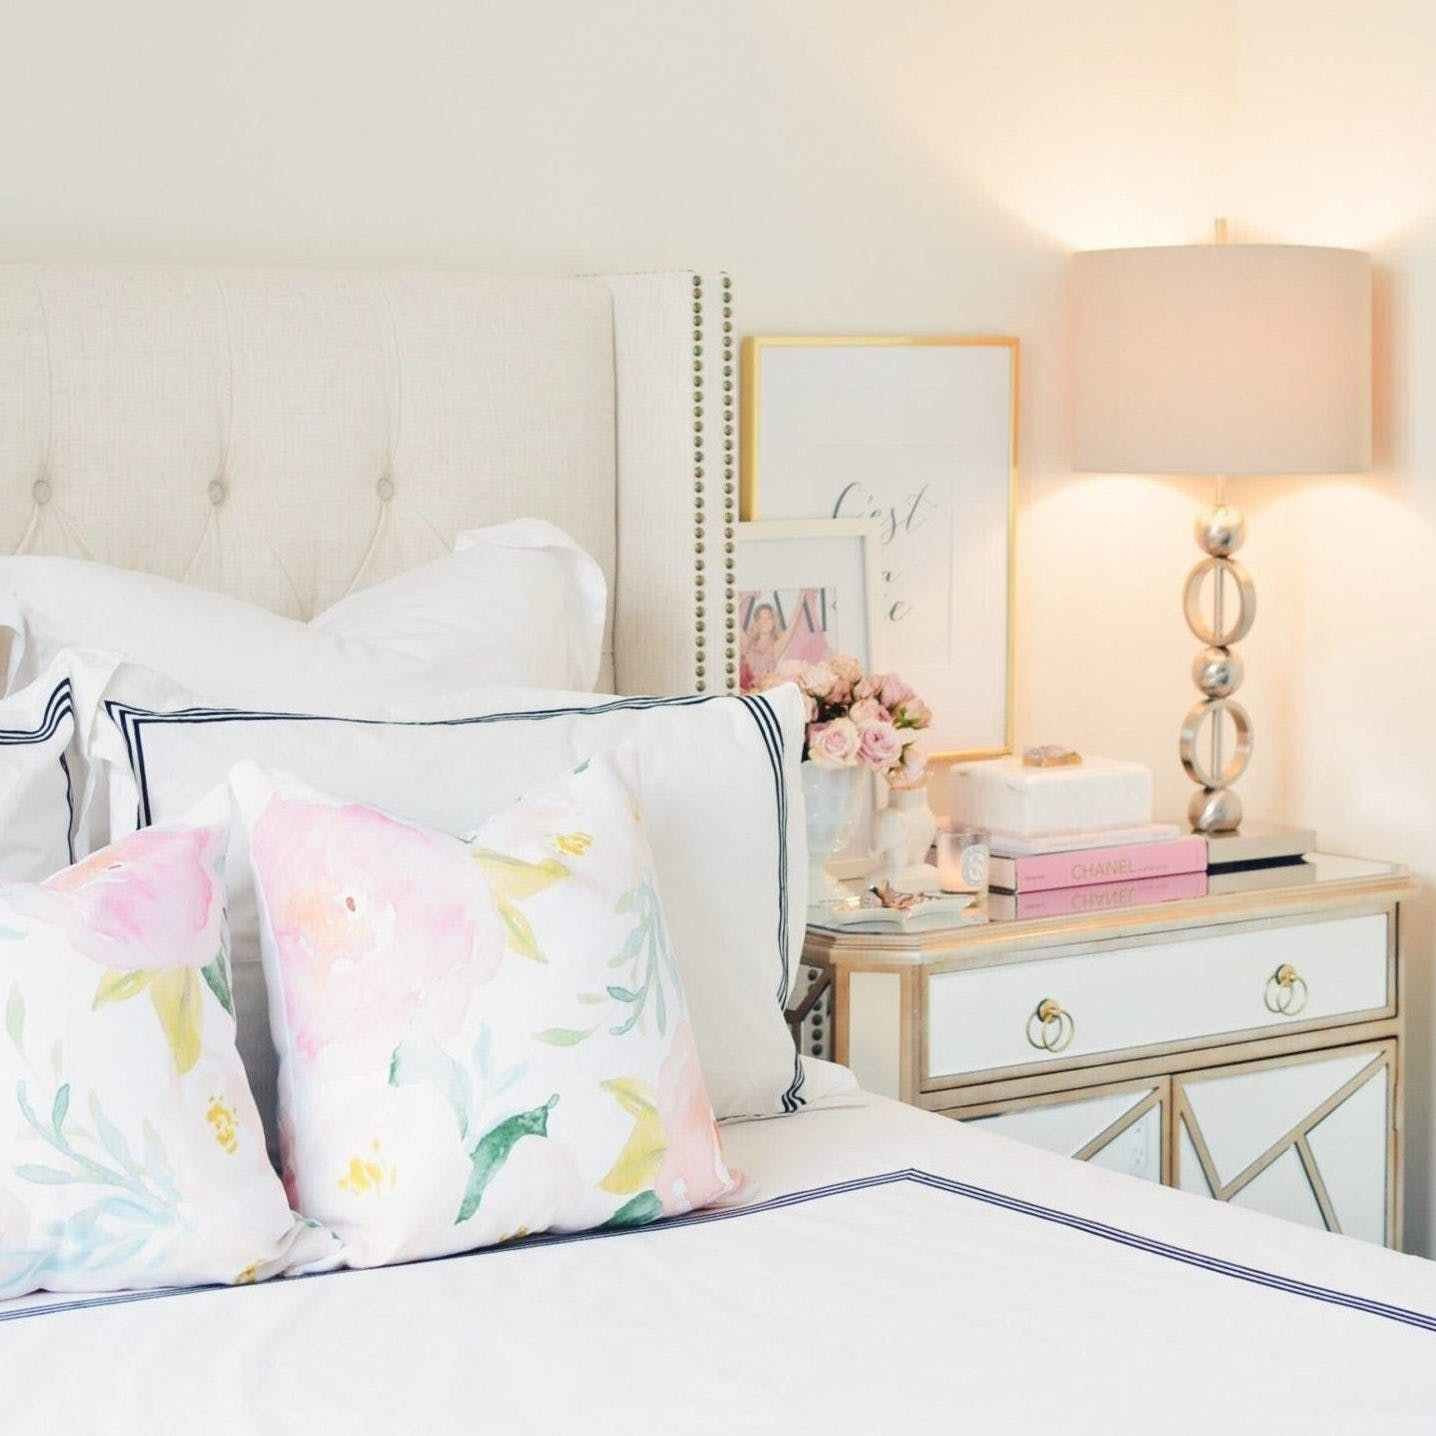 Best Bedroom Decor Ideas Inspired By Kate Sp*D* New York Style With Pictures